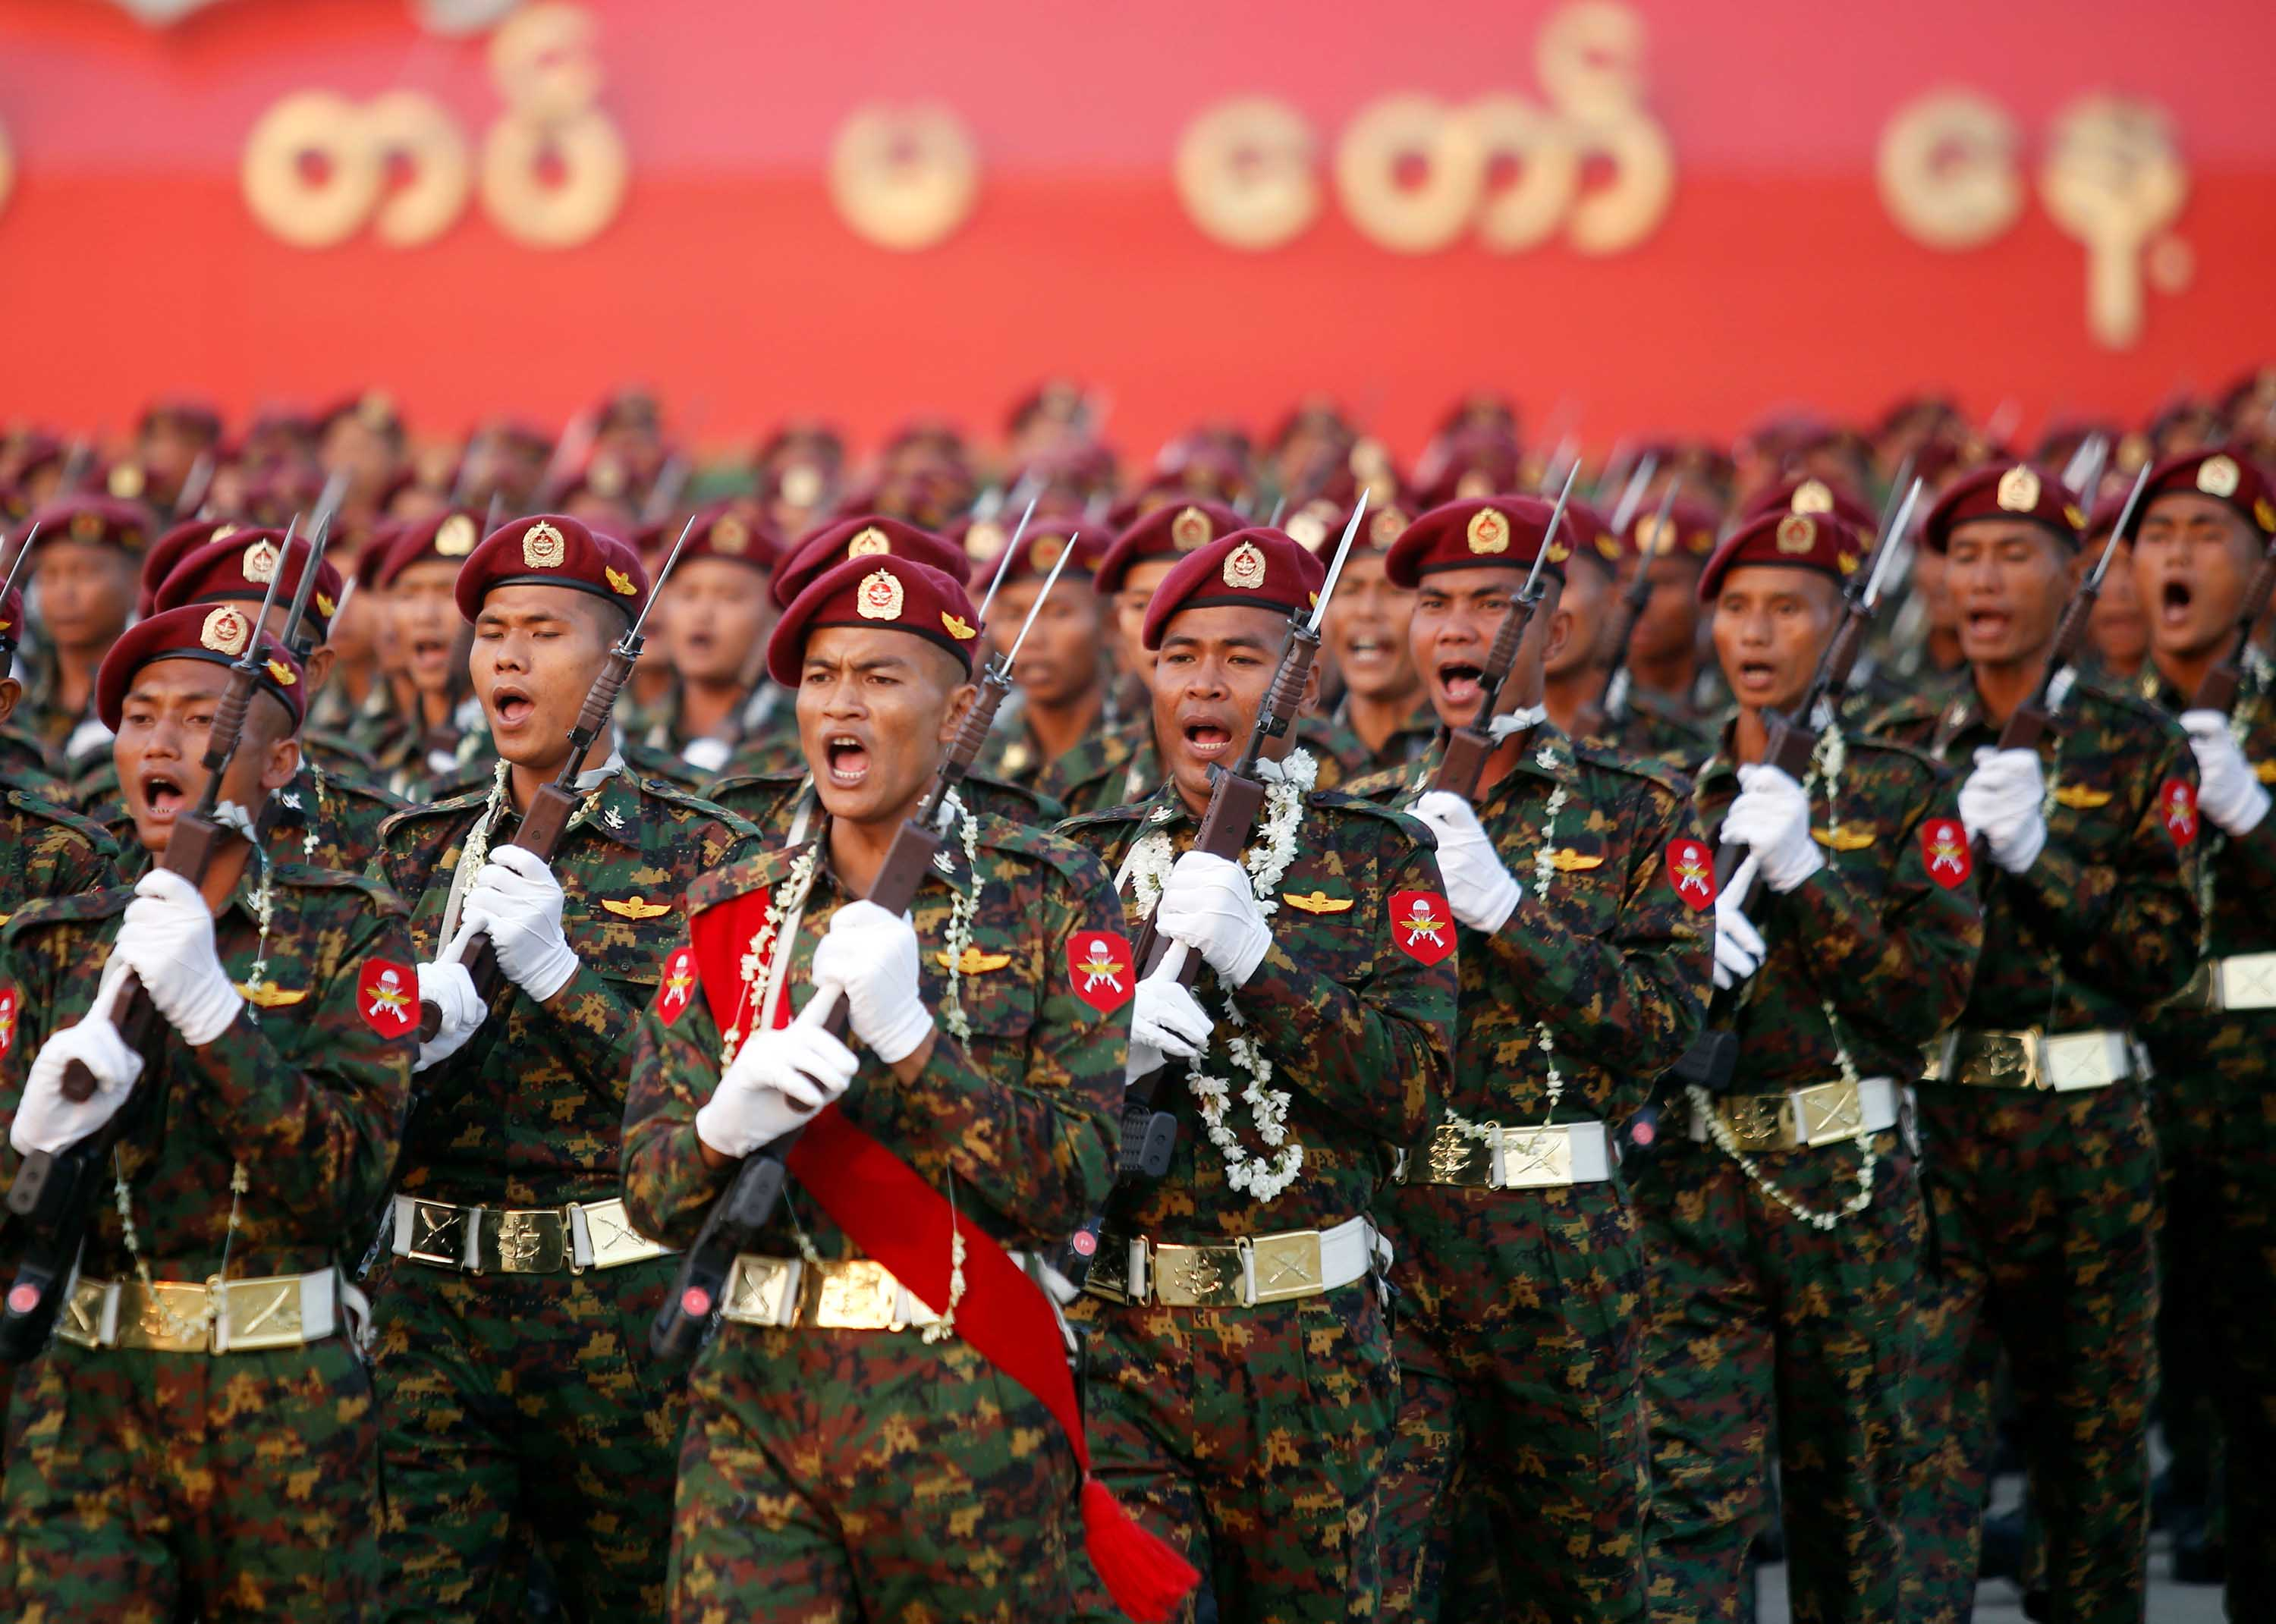 Myanmar soldiers march in formation during a military parade to mark Armed Forces Day in Naypyidaw, Myanmar, in March 2018.